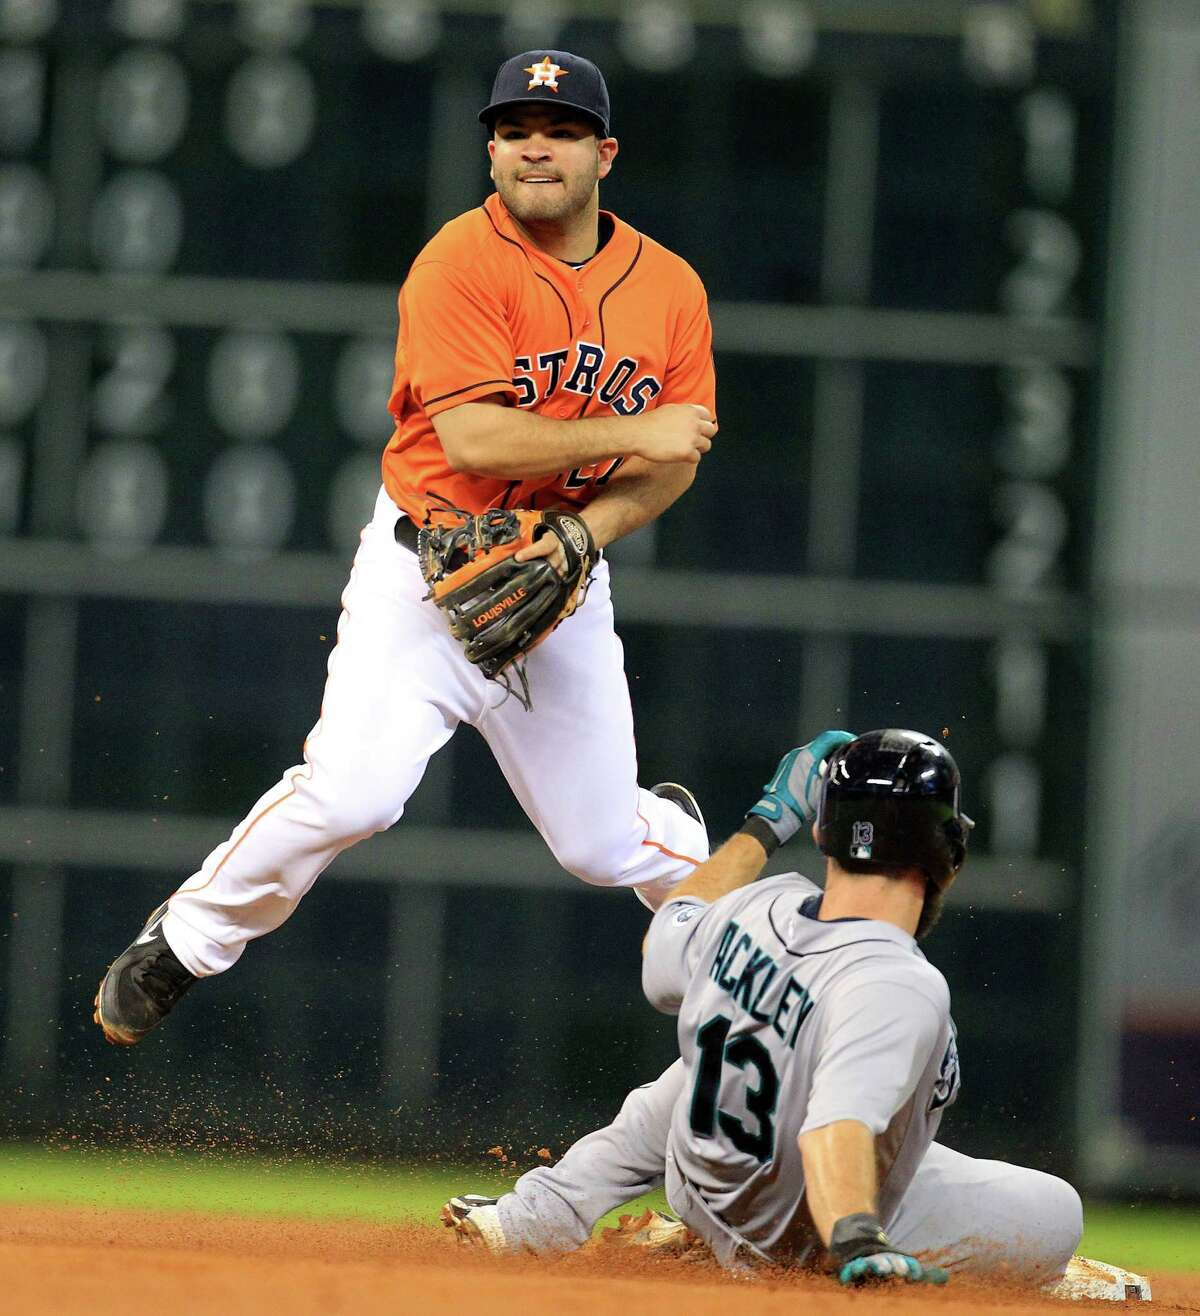 Houston Astros second baseman Jose Altuve (27) tries to get the double play out on on Abraham Almonte after tagging Seattle Mariners second baseman Dustin Ackley (13) out at second during the fourth inning of an MLB game at Minute Maid Park, Friday, Aug. 30, 2013, in Houston. ( Karen Warren / Houston Chronicle )